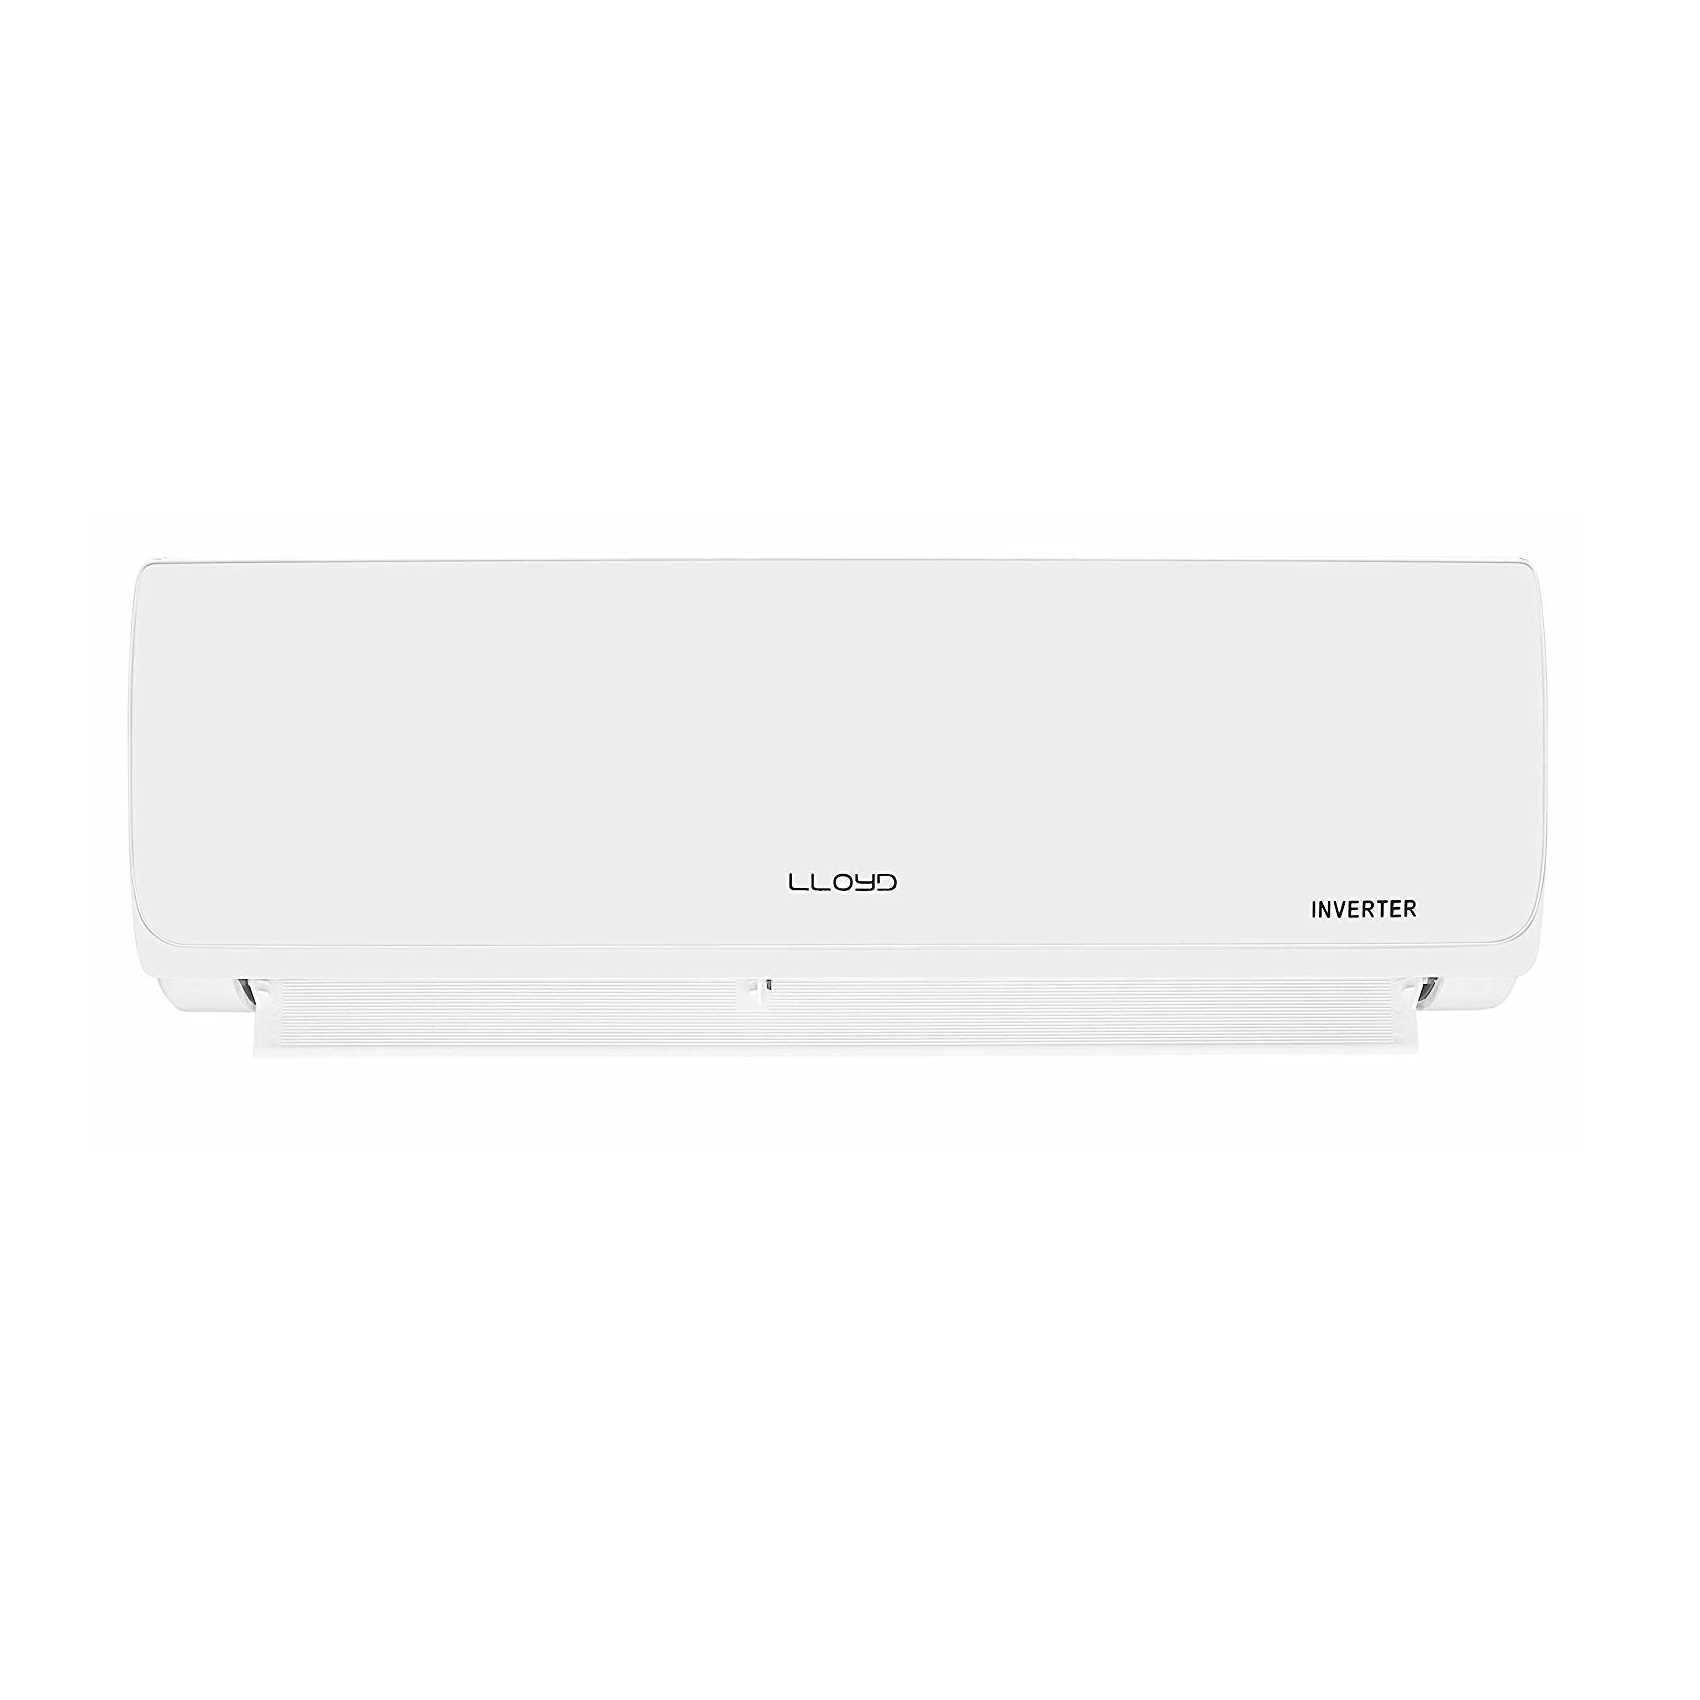 Lloyd LS18I32AL 1.5 Ton 3 Star Inverter Split AC